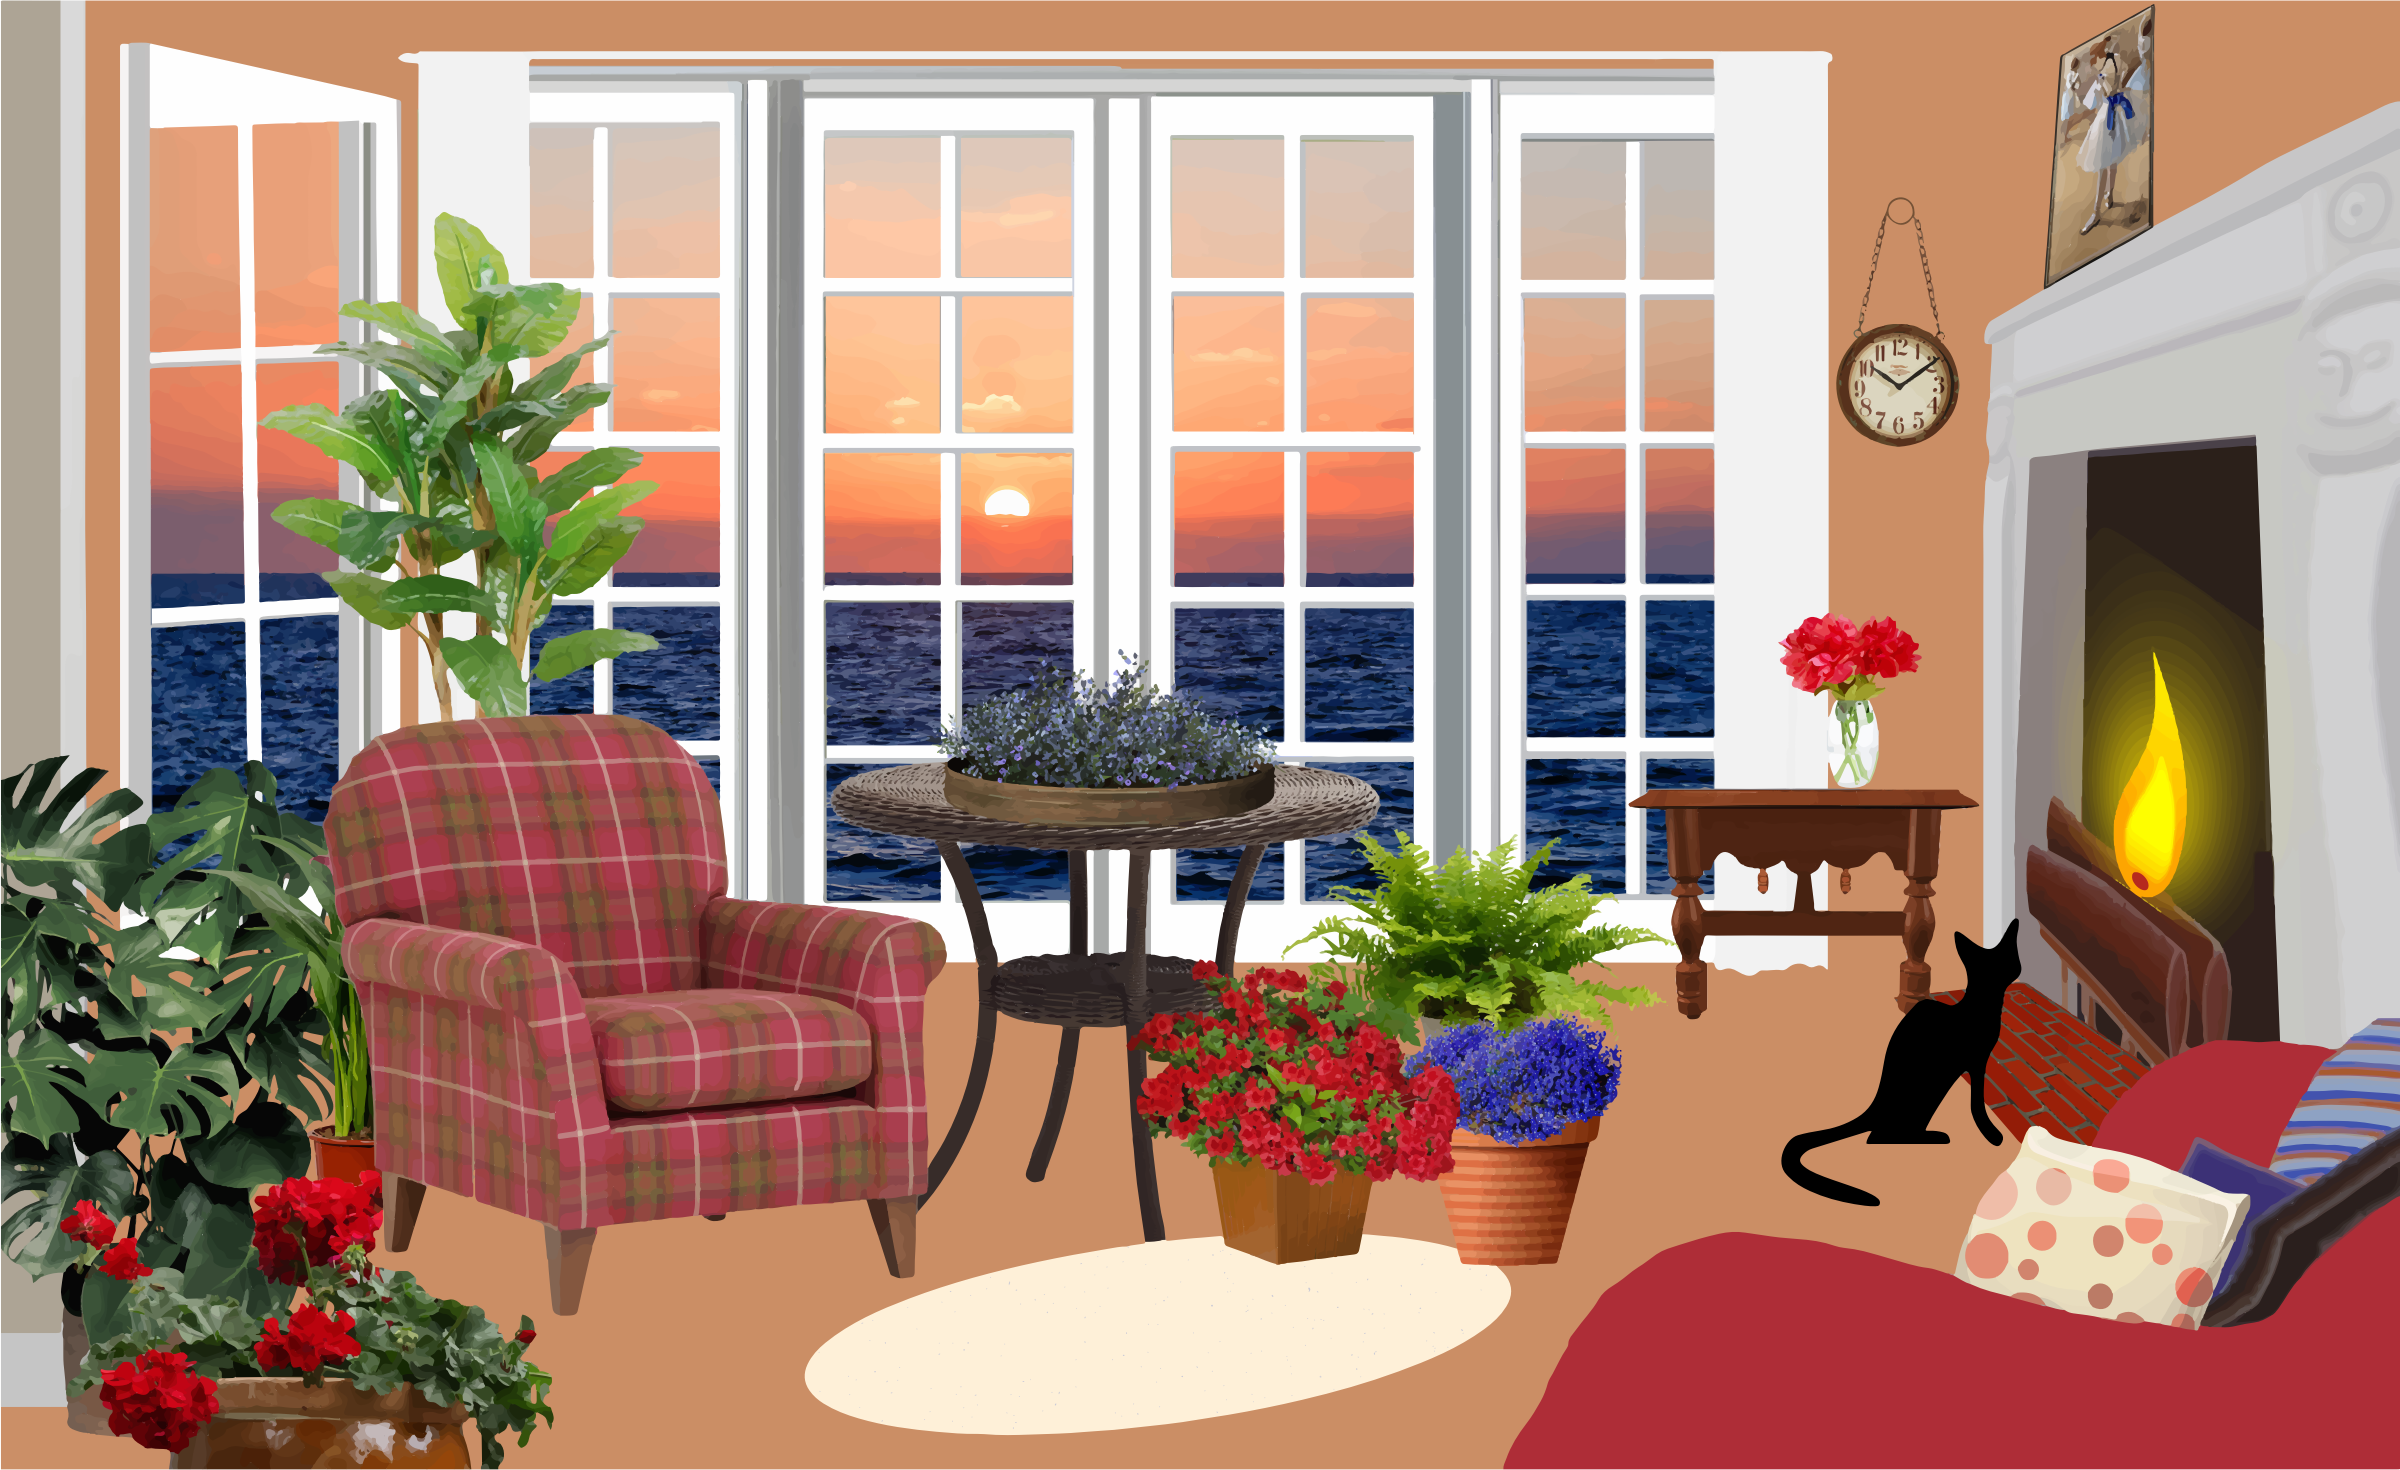 Fictional Living Room With An Ocean View by GDJ